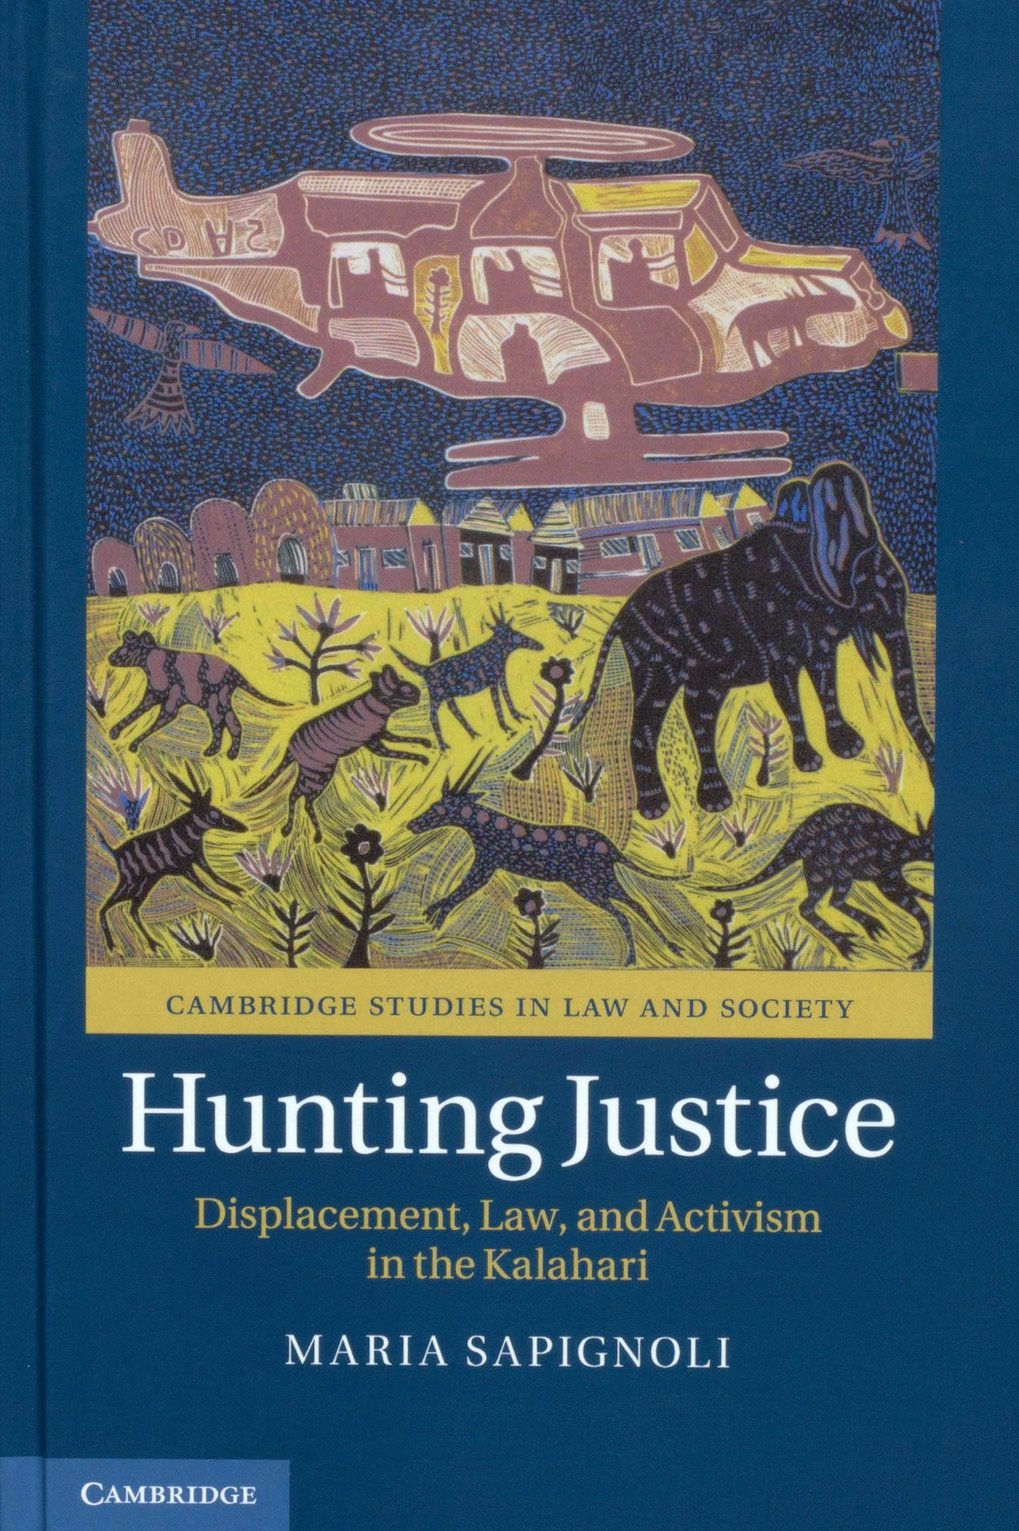 Hunting justice: displacement, law and activism in the Kalahari